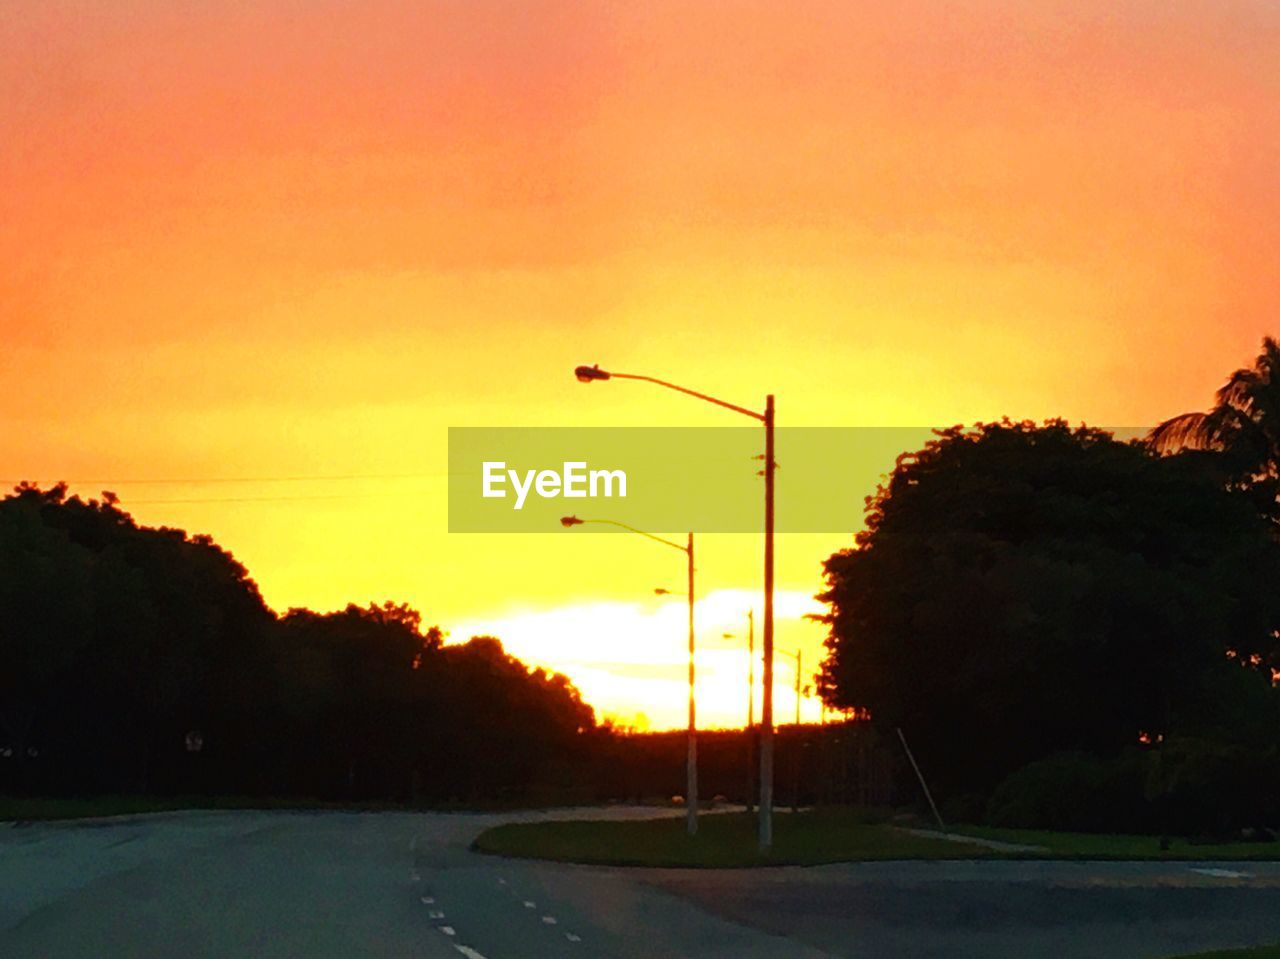 sunset, silhouette, orange color, tree, sky, nature, outdoors, road, no people, scenics, street light, beauty in nature, water, clear sky, day